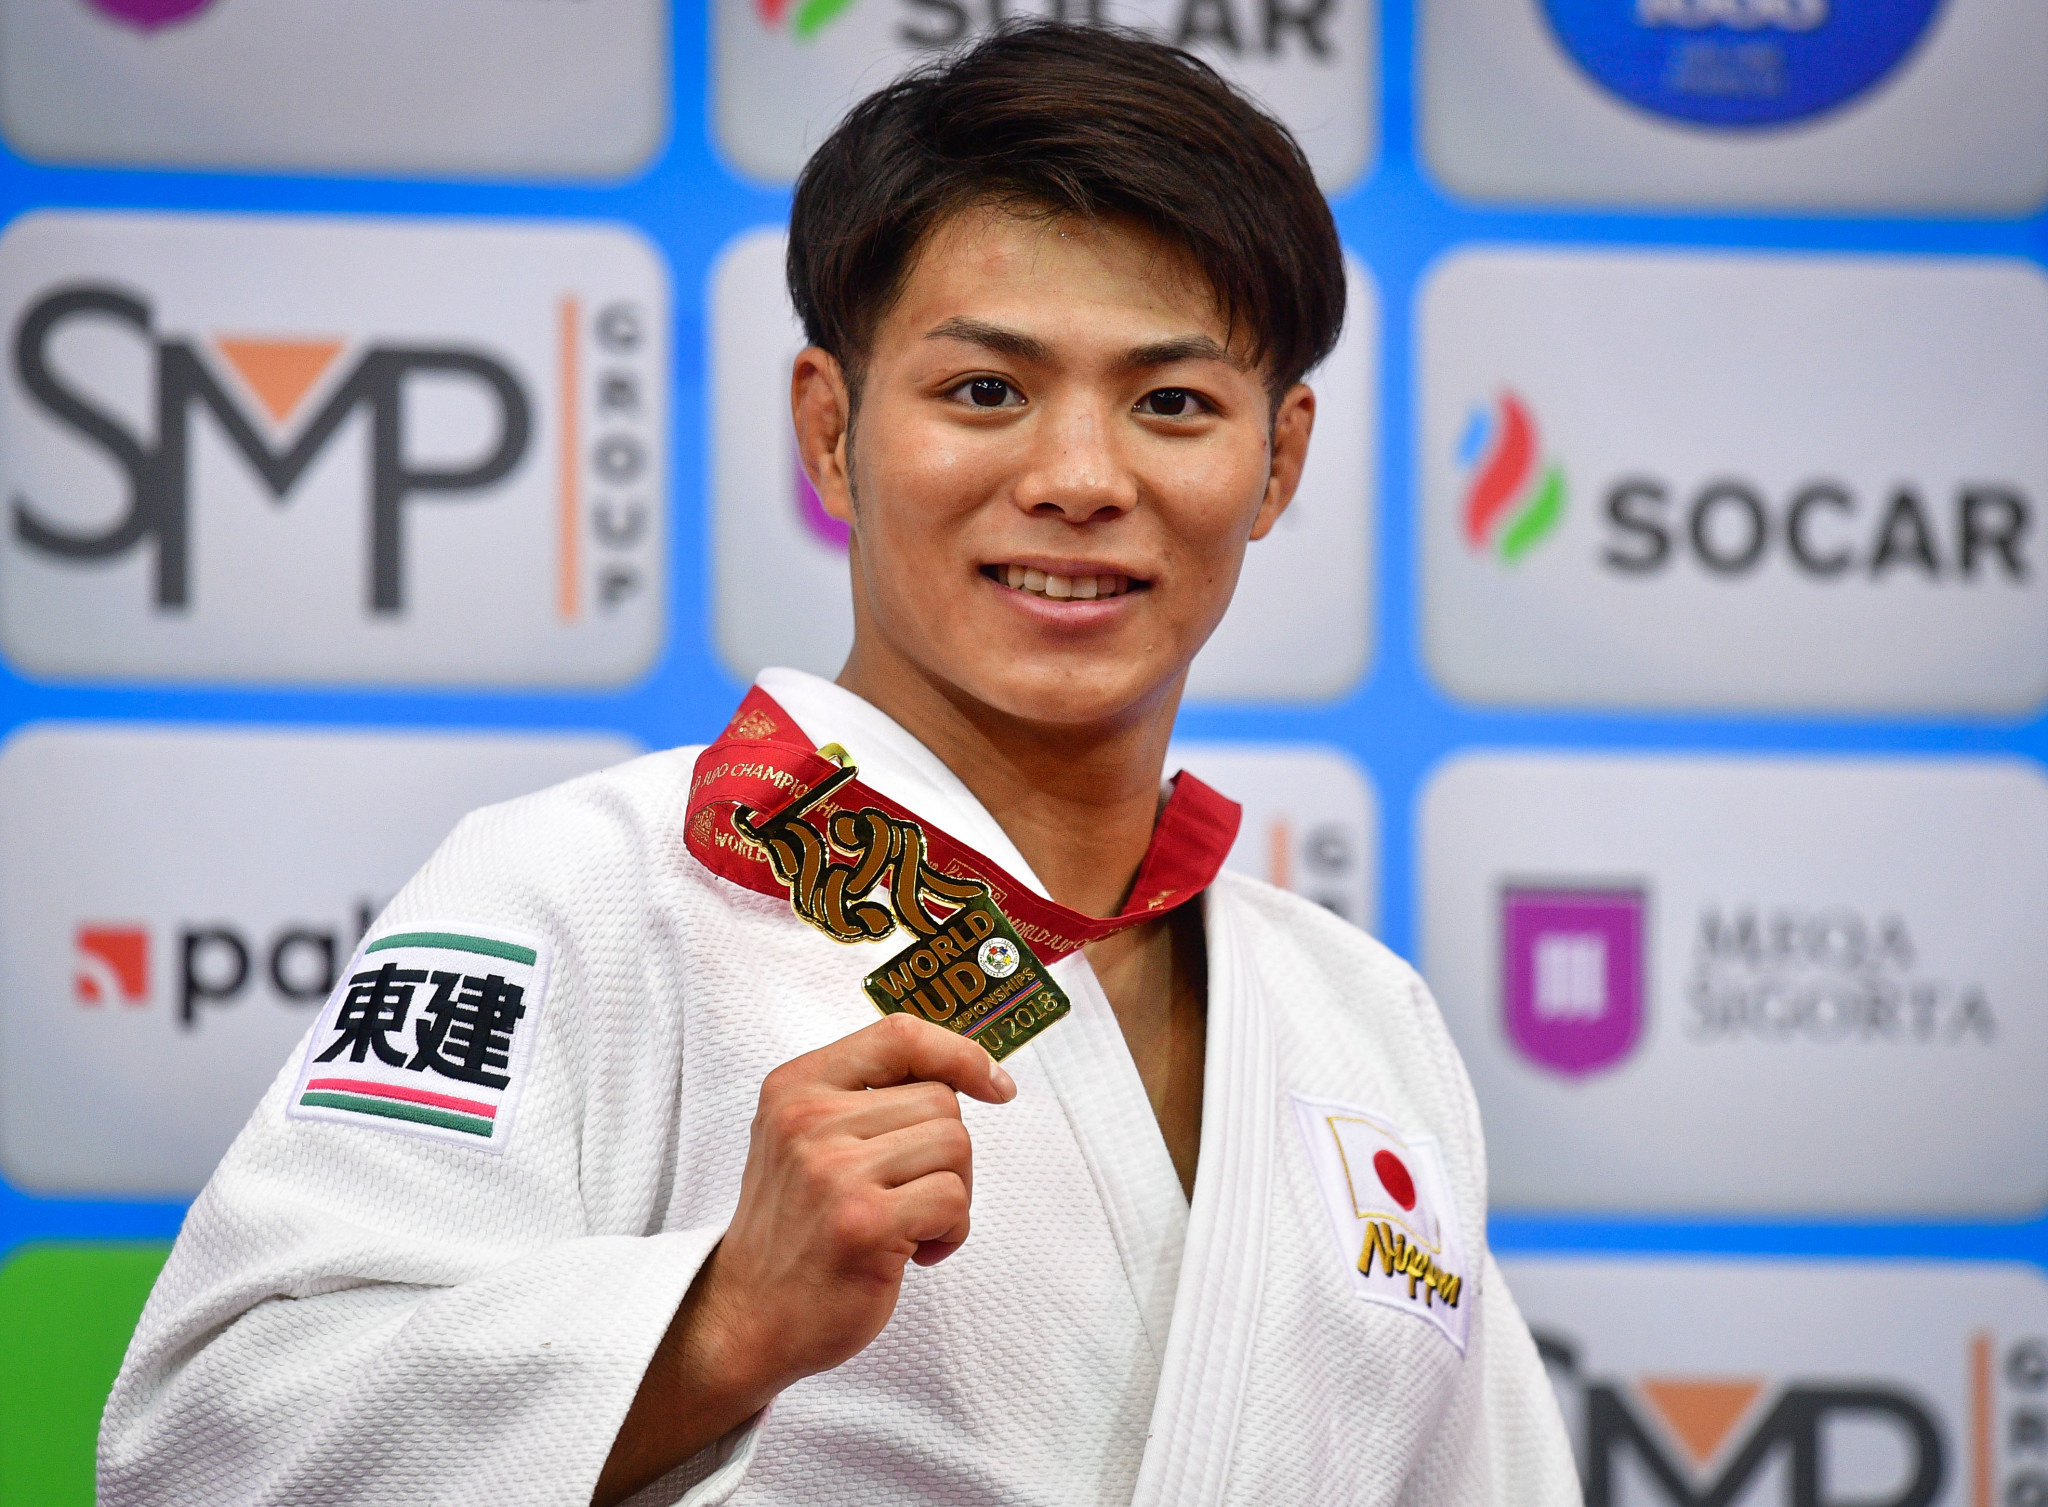 In the men's under-66kg category, Hifumi Abe successfully defended his title ©Getty Images